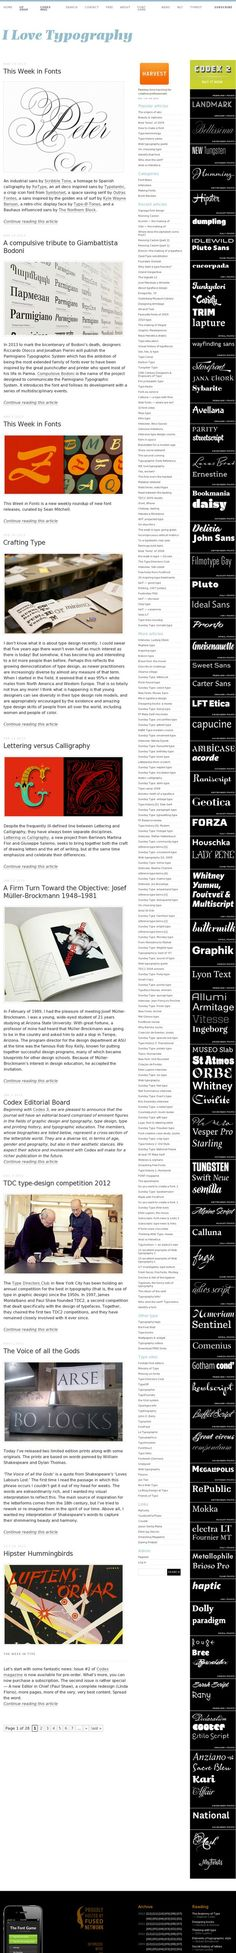 ilovetypography.com webpage used for initial experiments.